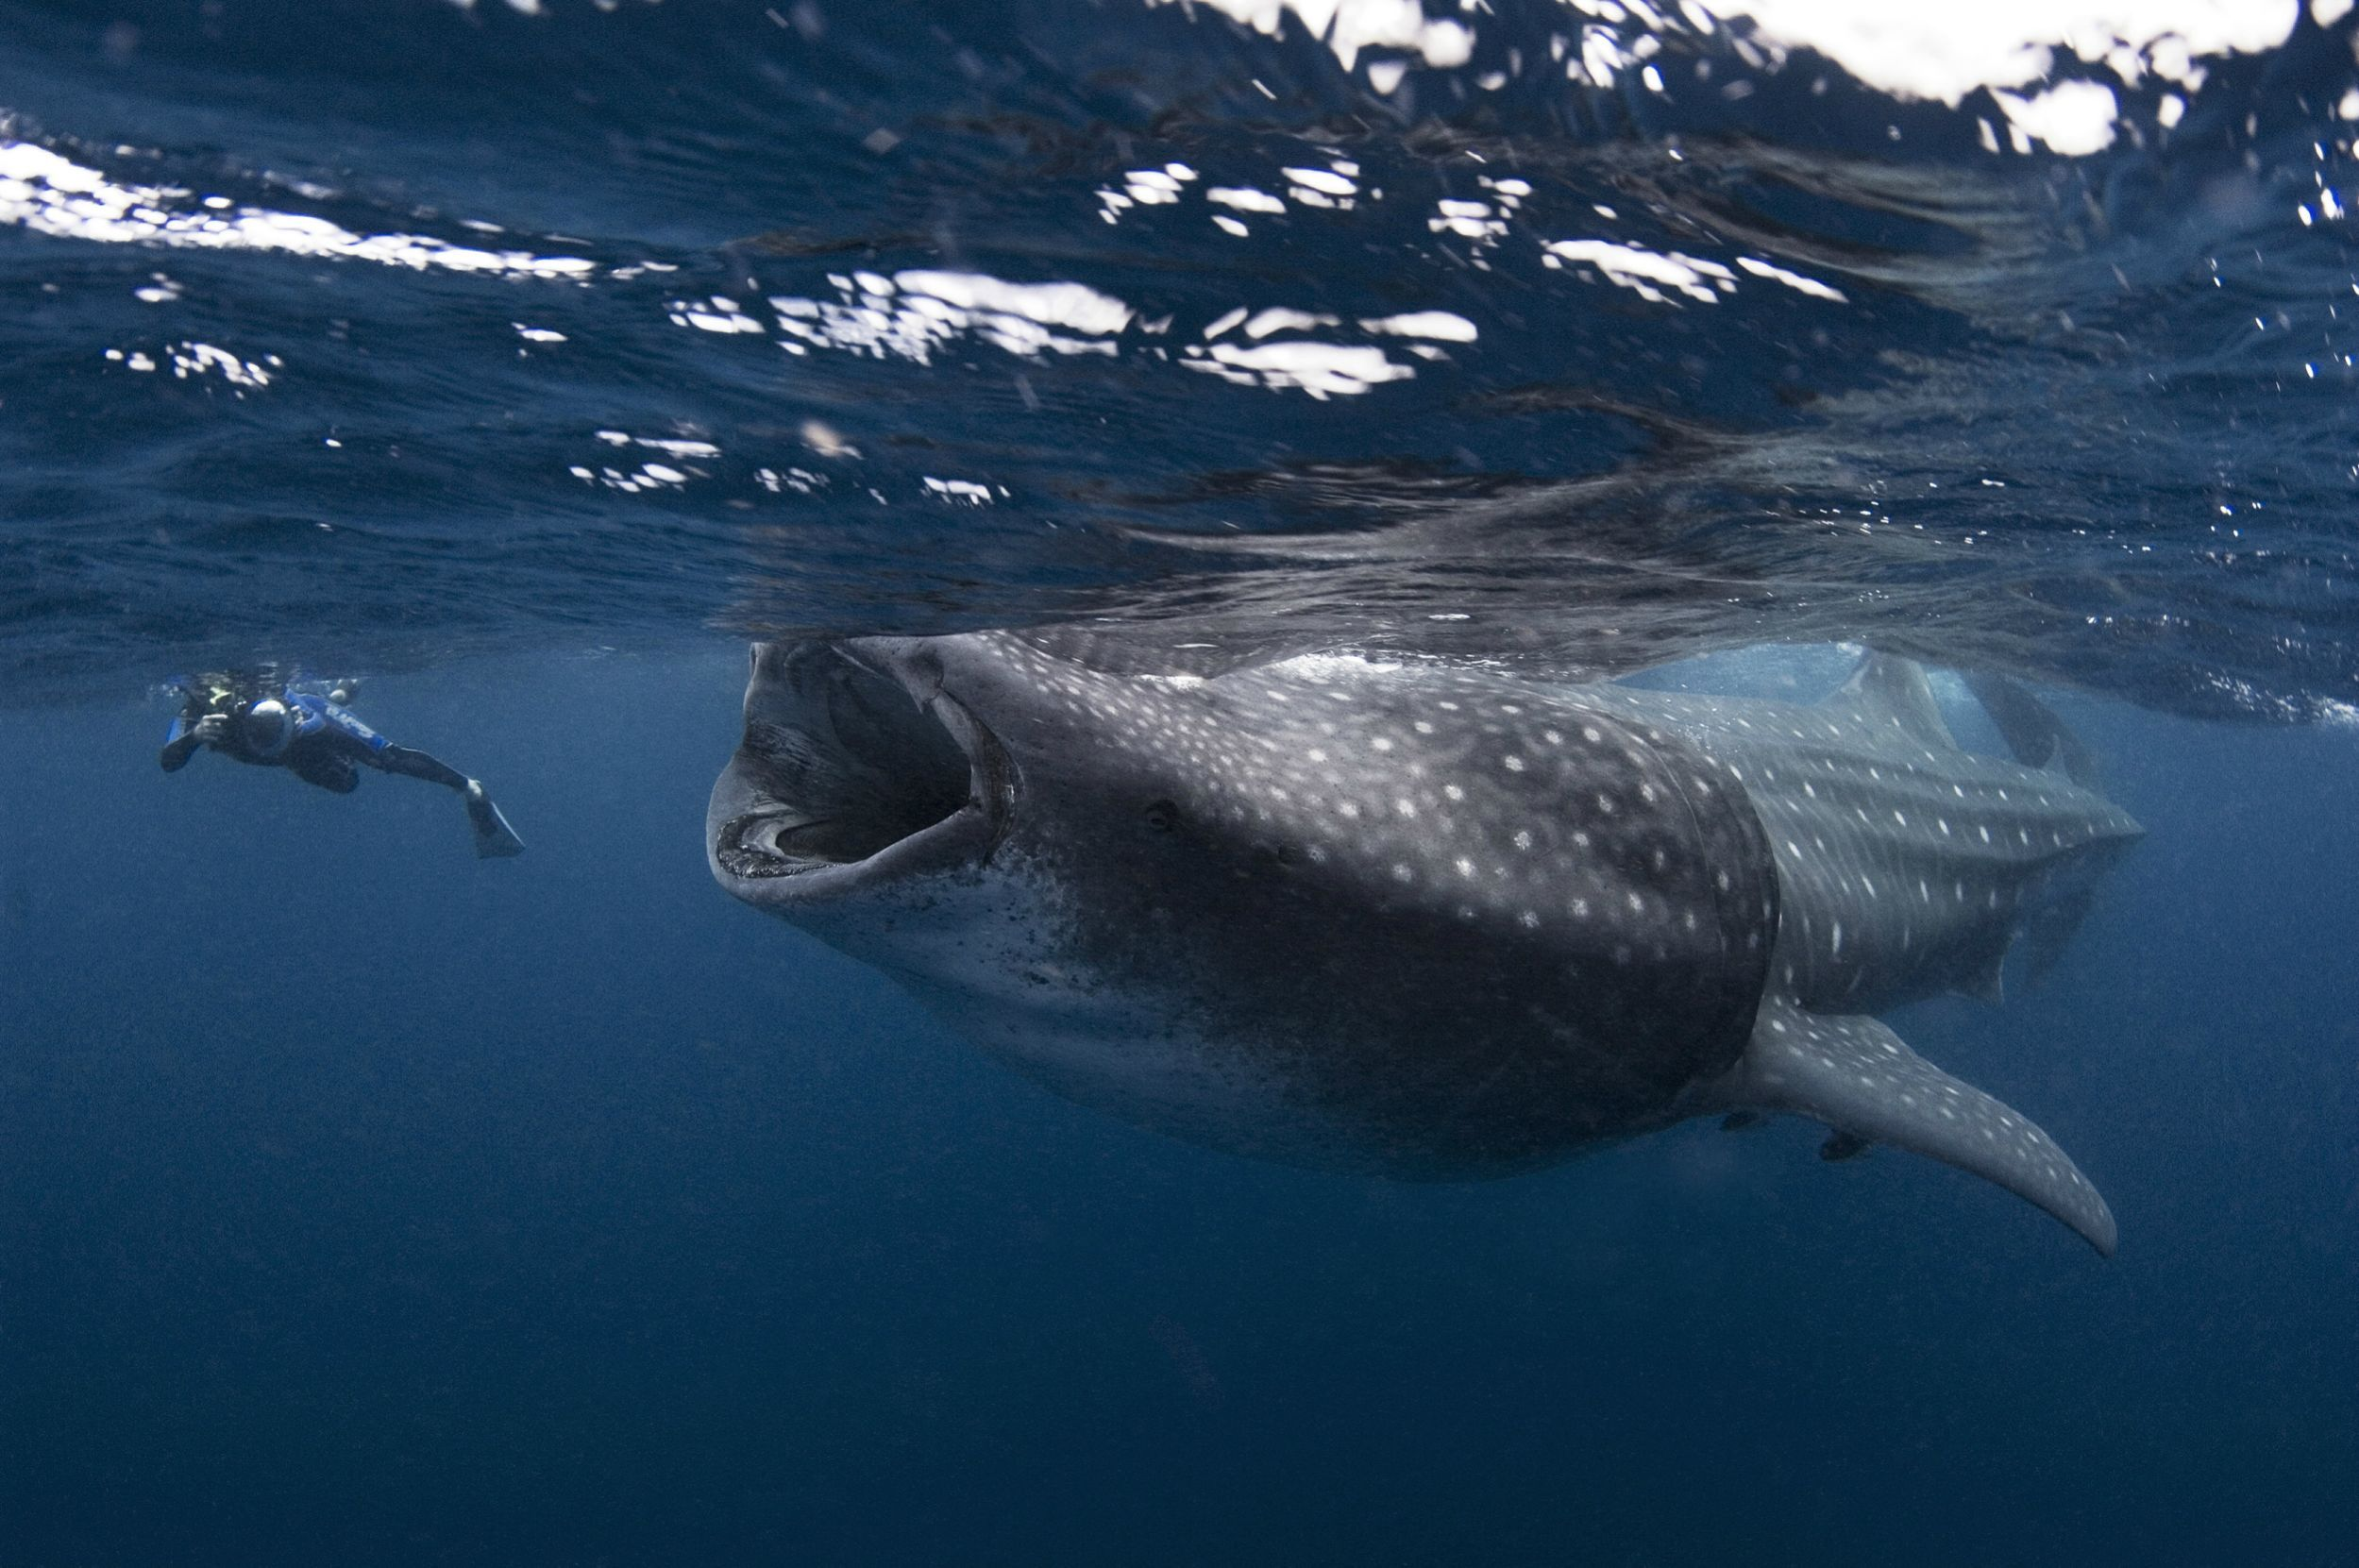 Incredible Photo Of A Huge Whale Shark Almost Swallowing A Diver